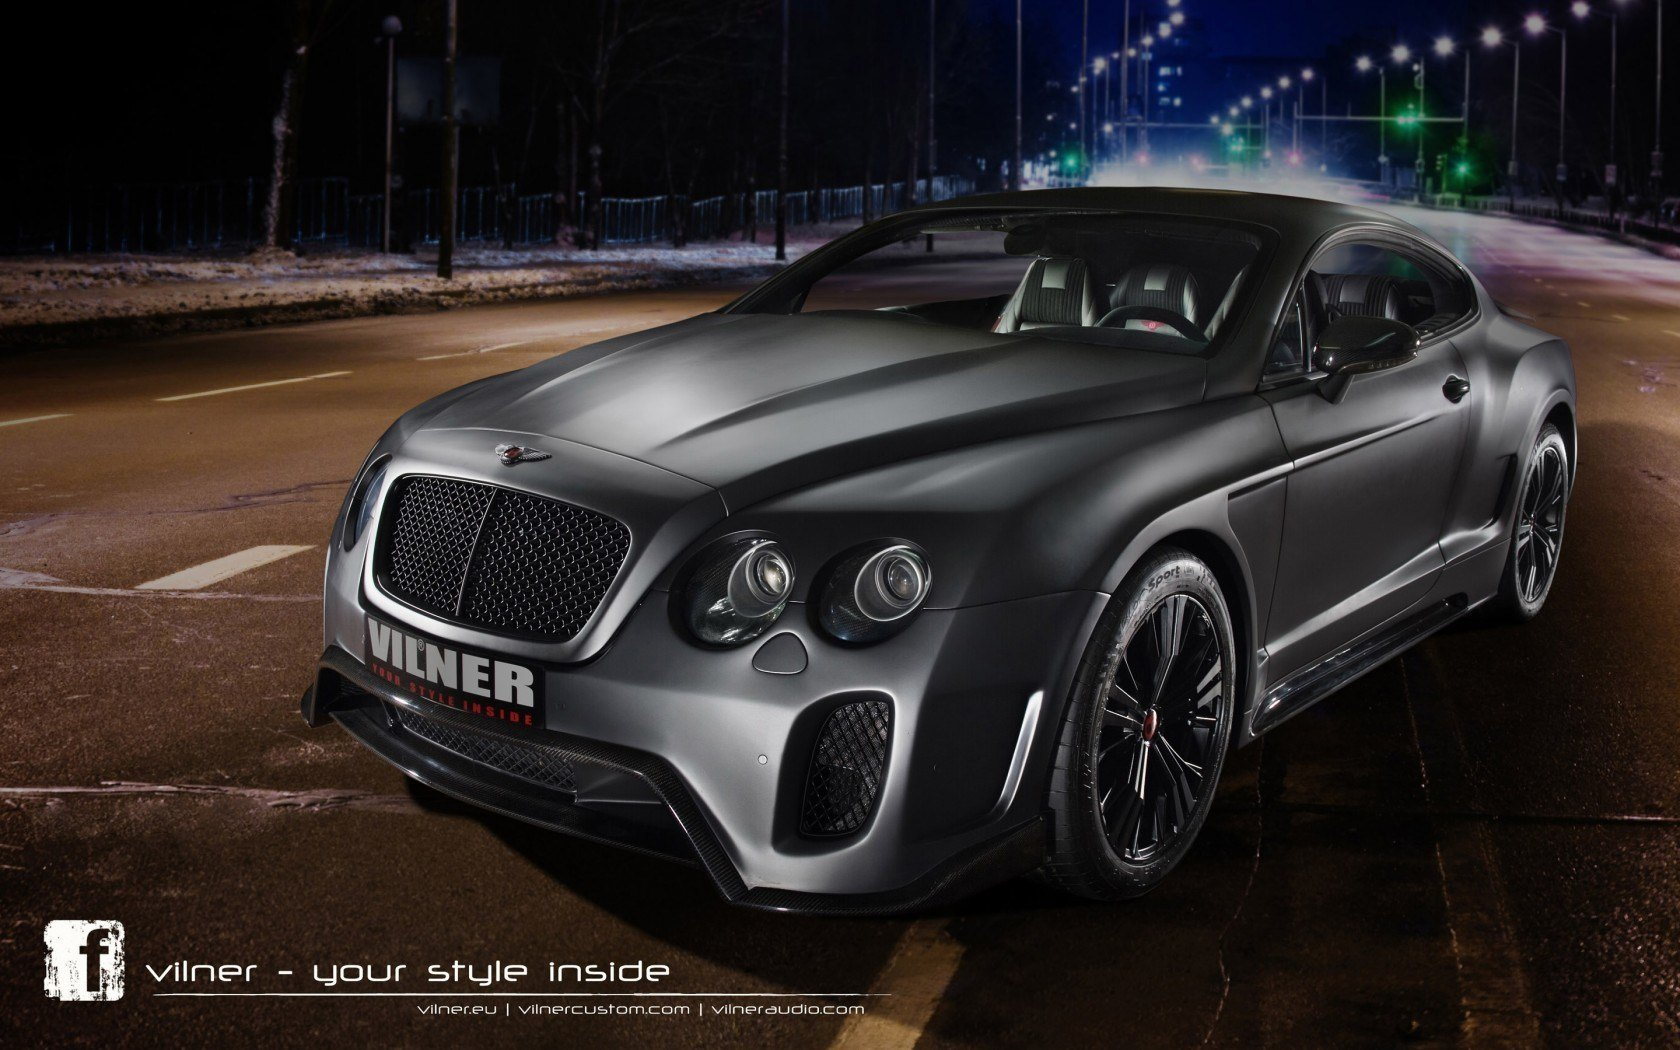 Latest Vilner Bentley Continental Gt Wallpaper Hd Car Free Download